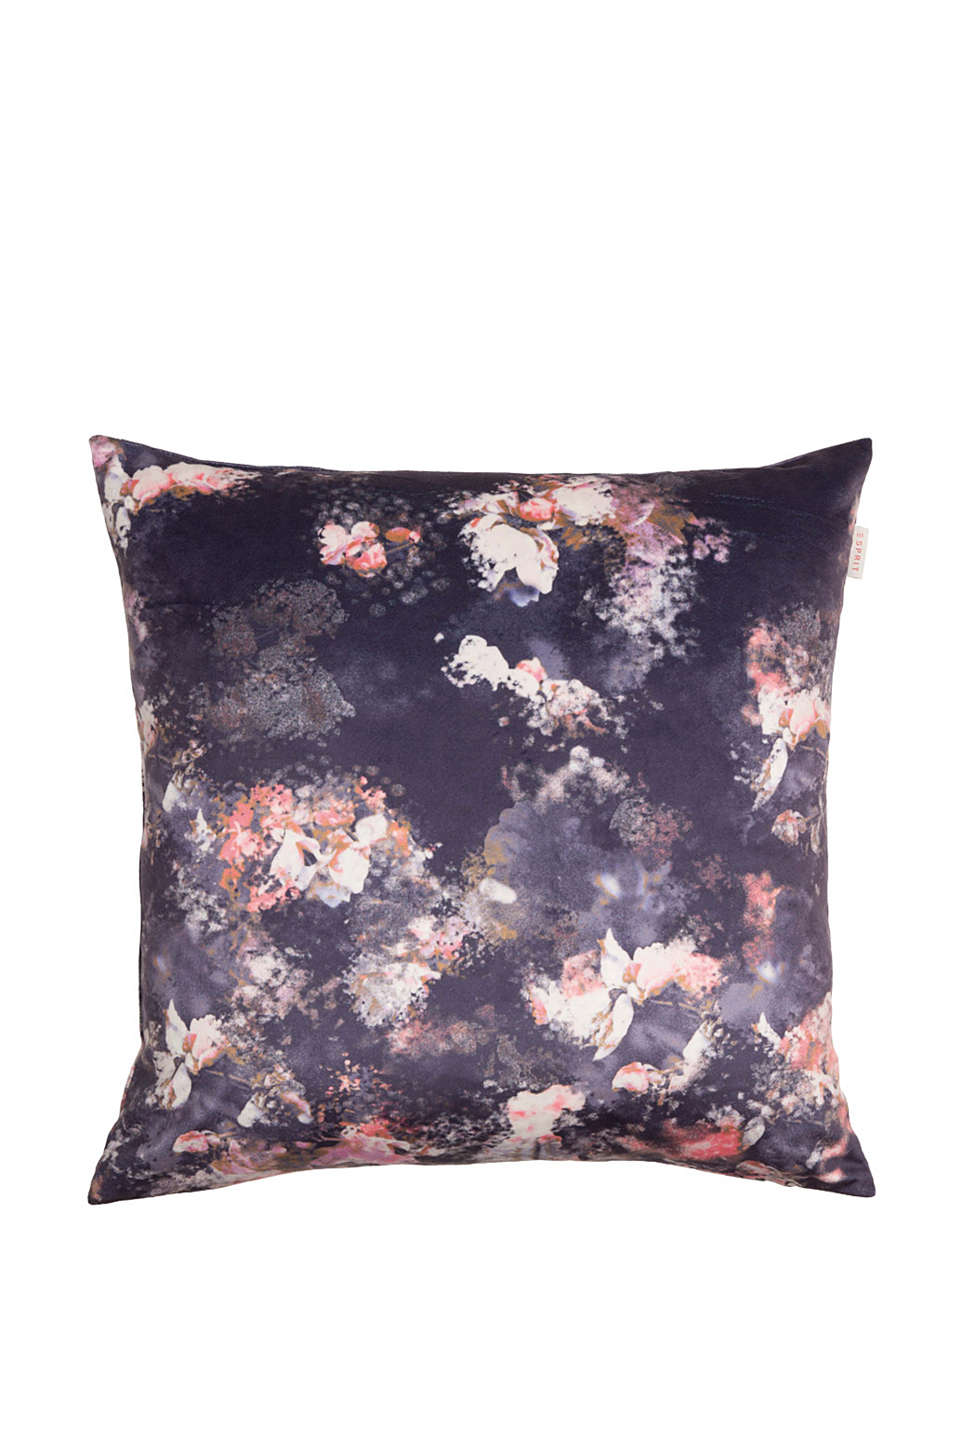 with an innovative floral pattern (45 x 45 cm)